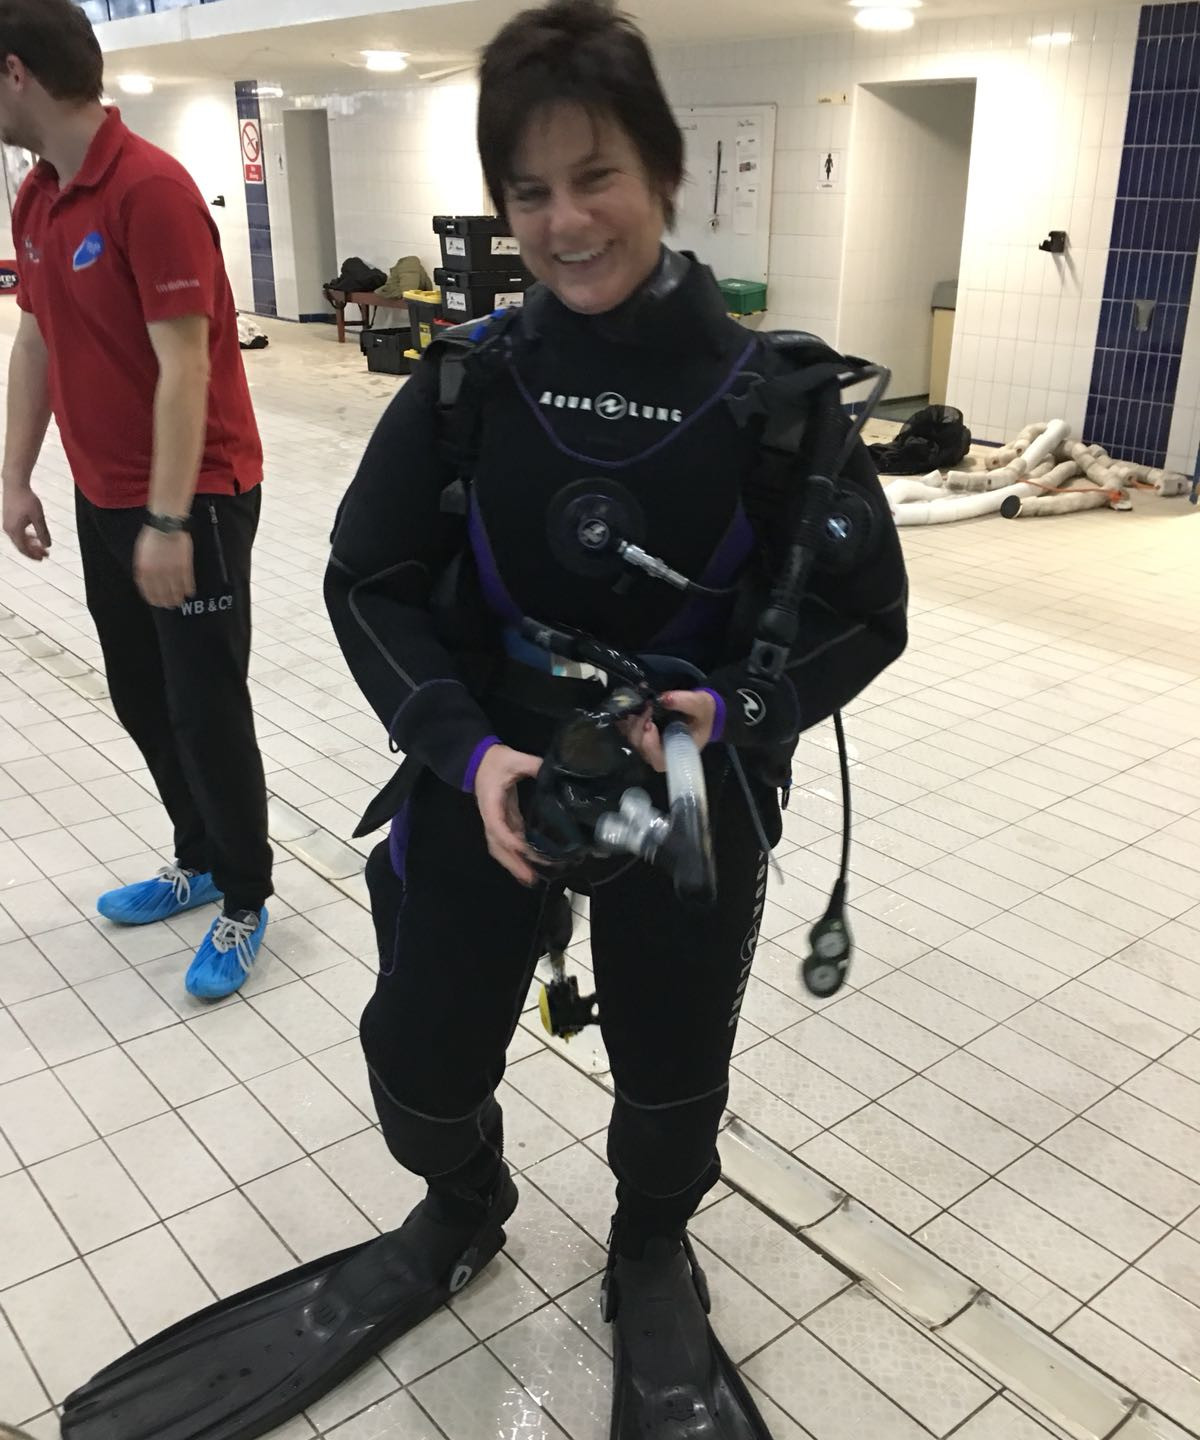 Debbie does Drysuit